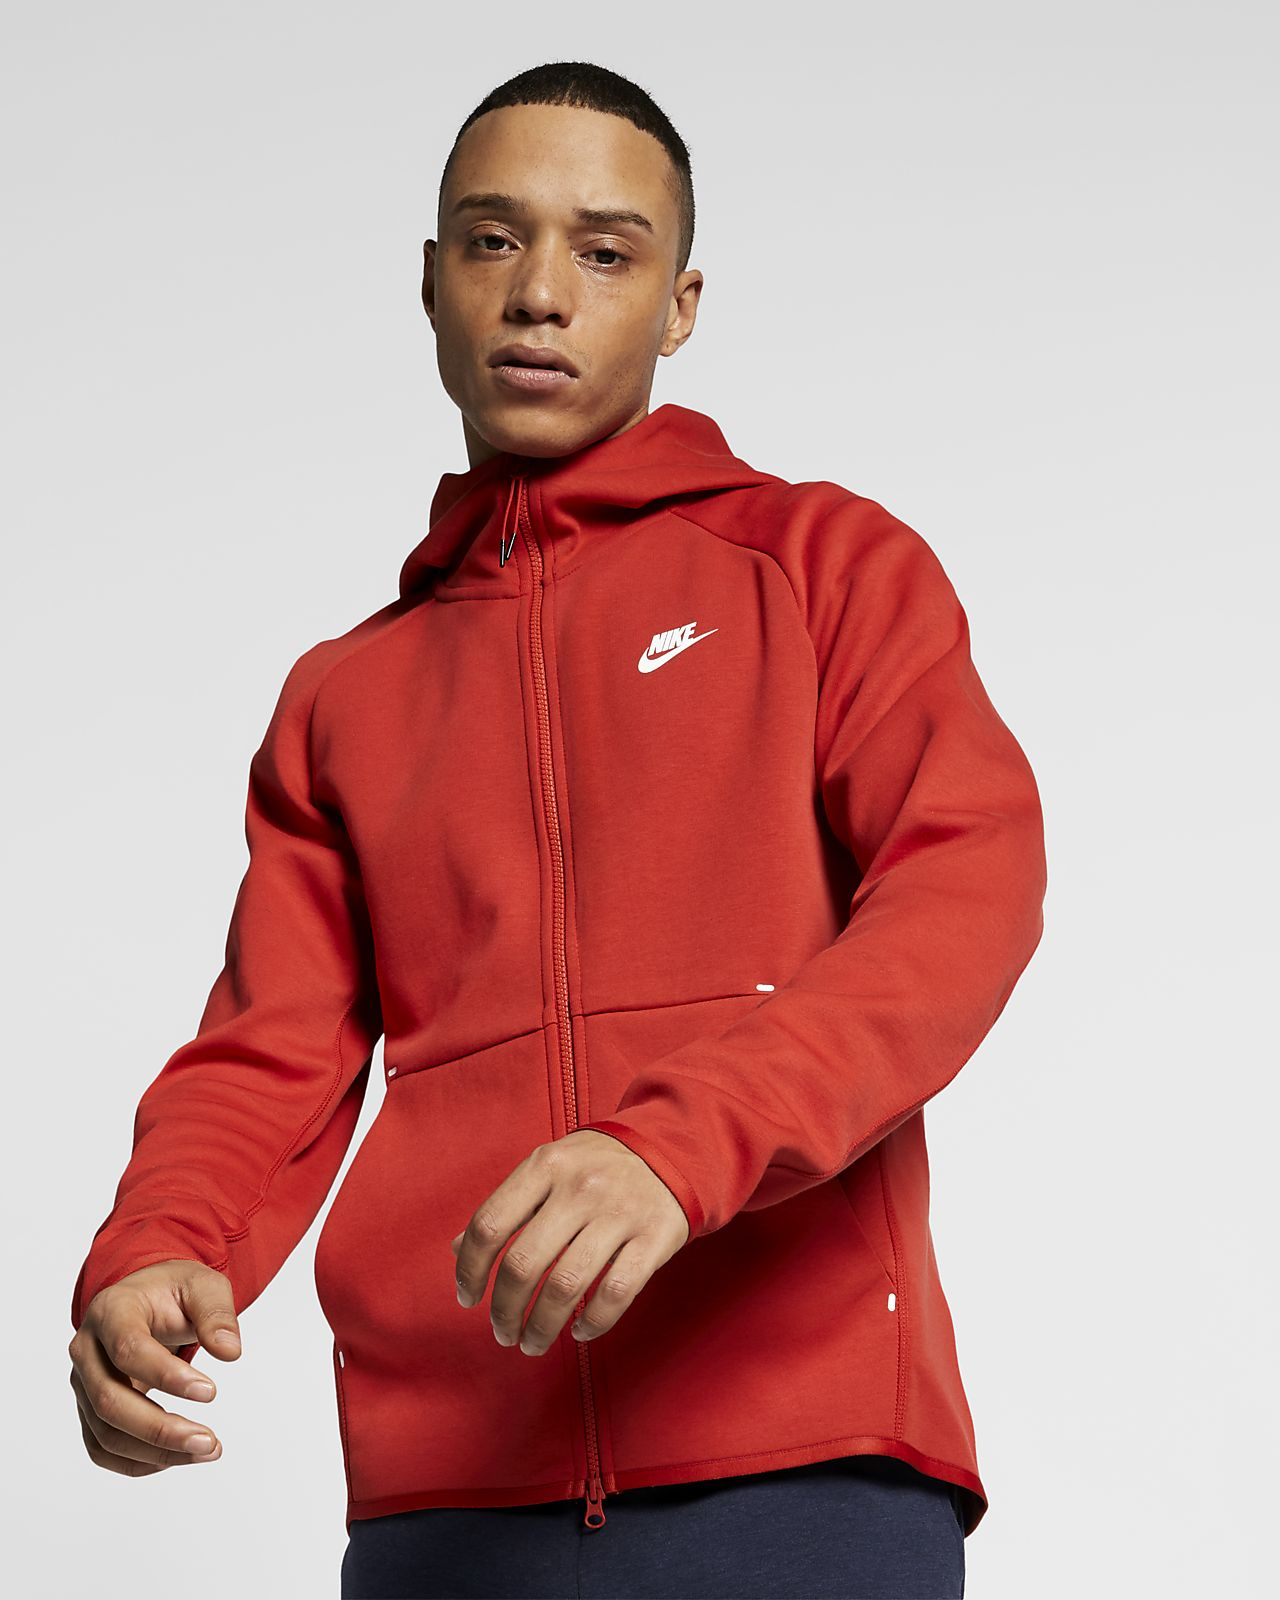 best sneakers 4e221 75a60 ... Nike Sportswear Tech Fleece Mens Full-Zip Hoodie